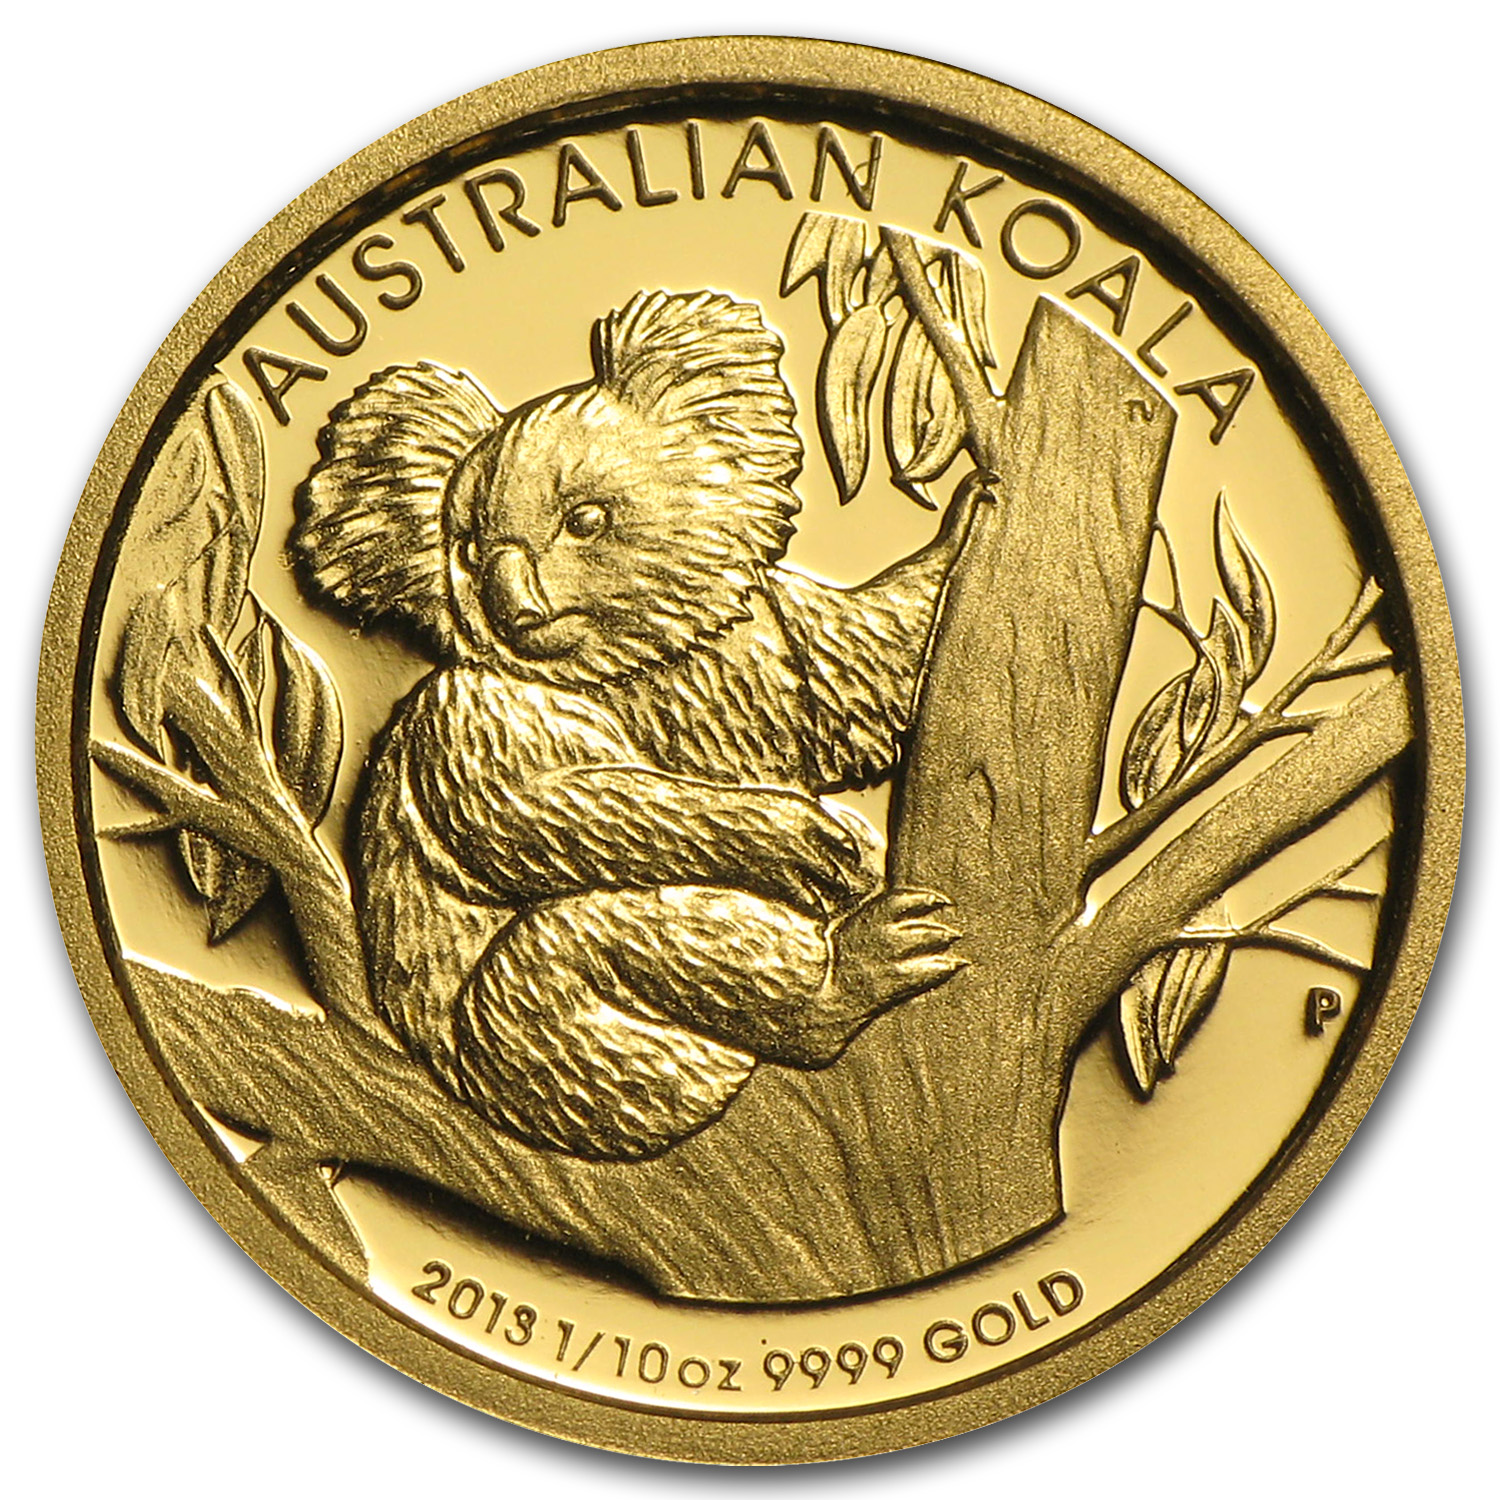 2013 1/10 oz Australian Gold Koala Proof